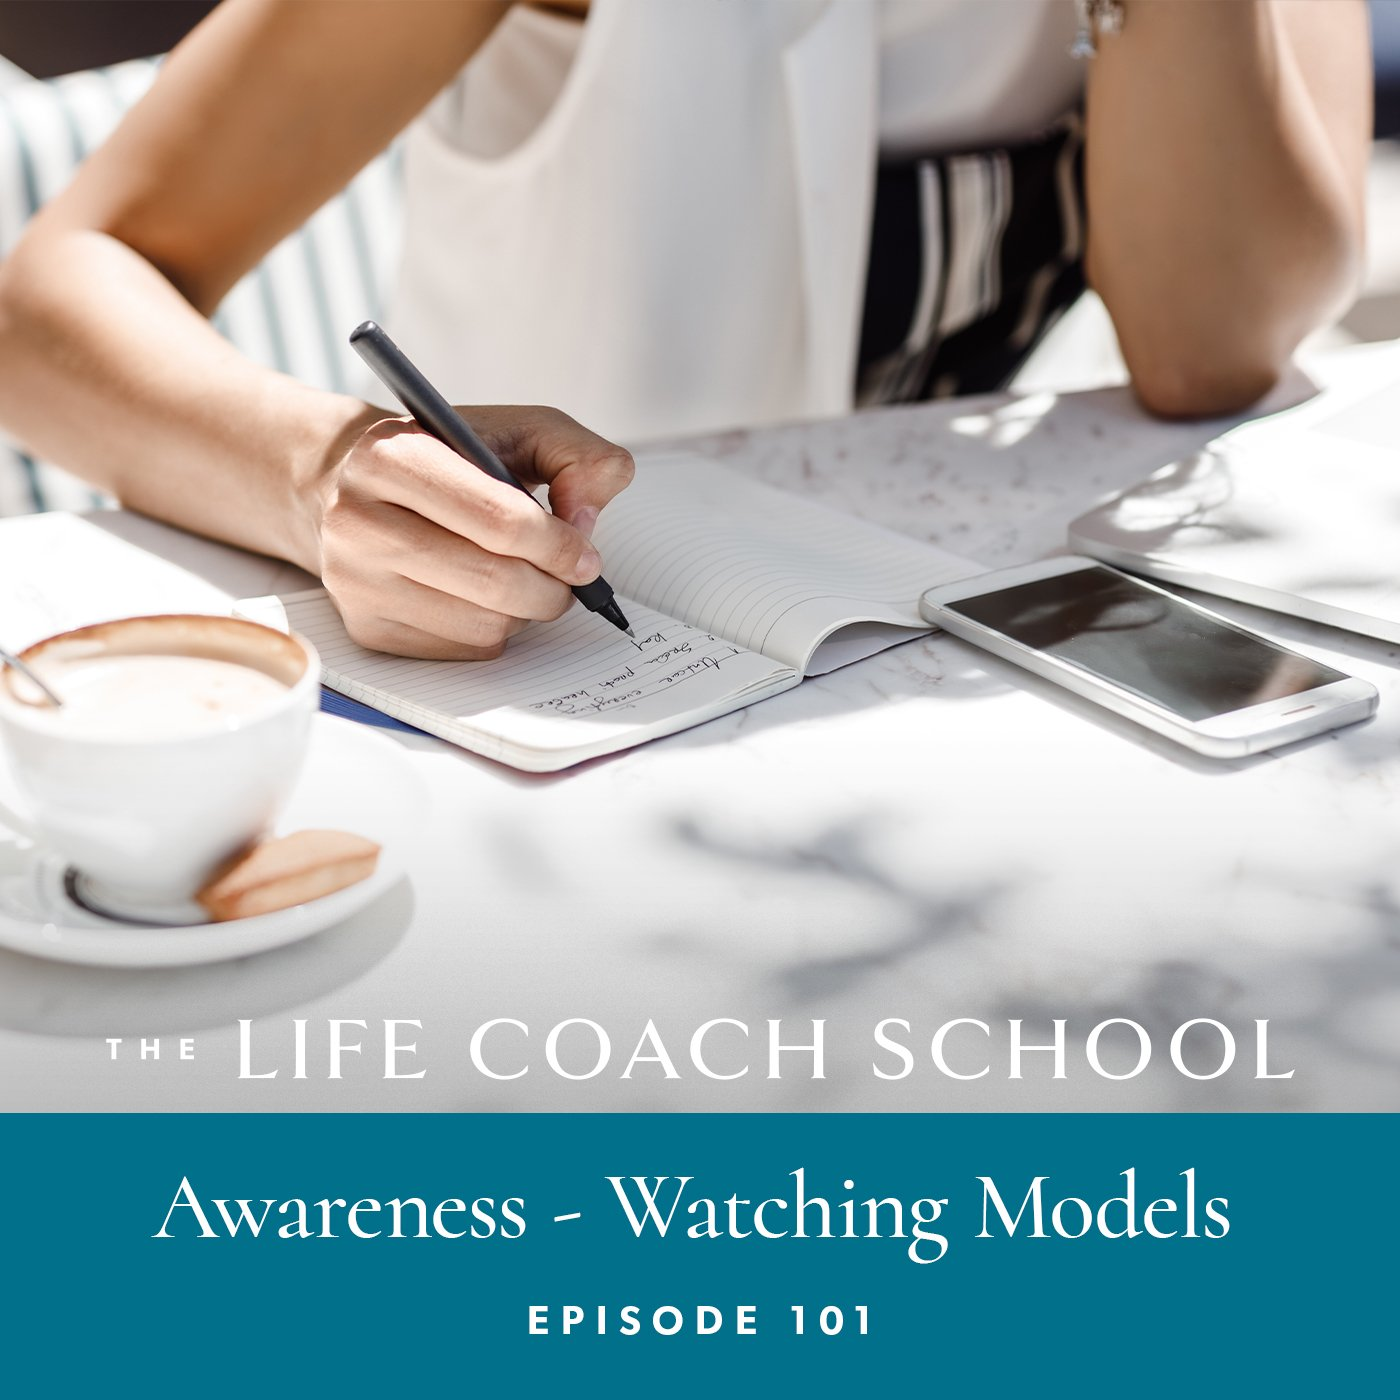 The Life Coach School Podcast with Brooke Castillo | Episode 101 | Awareness – Watching Models